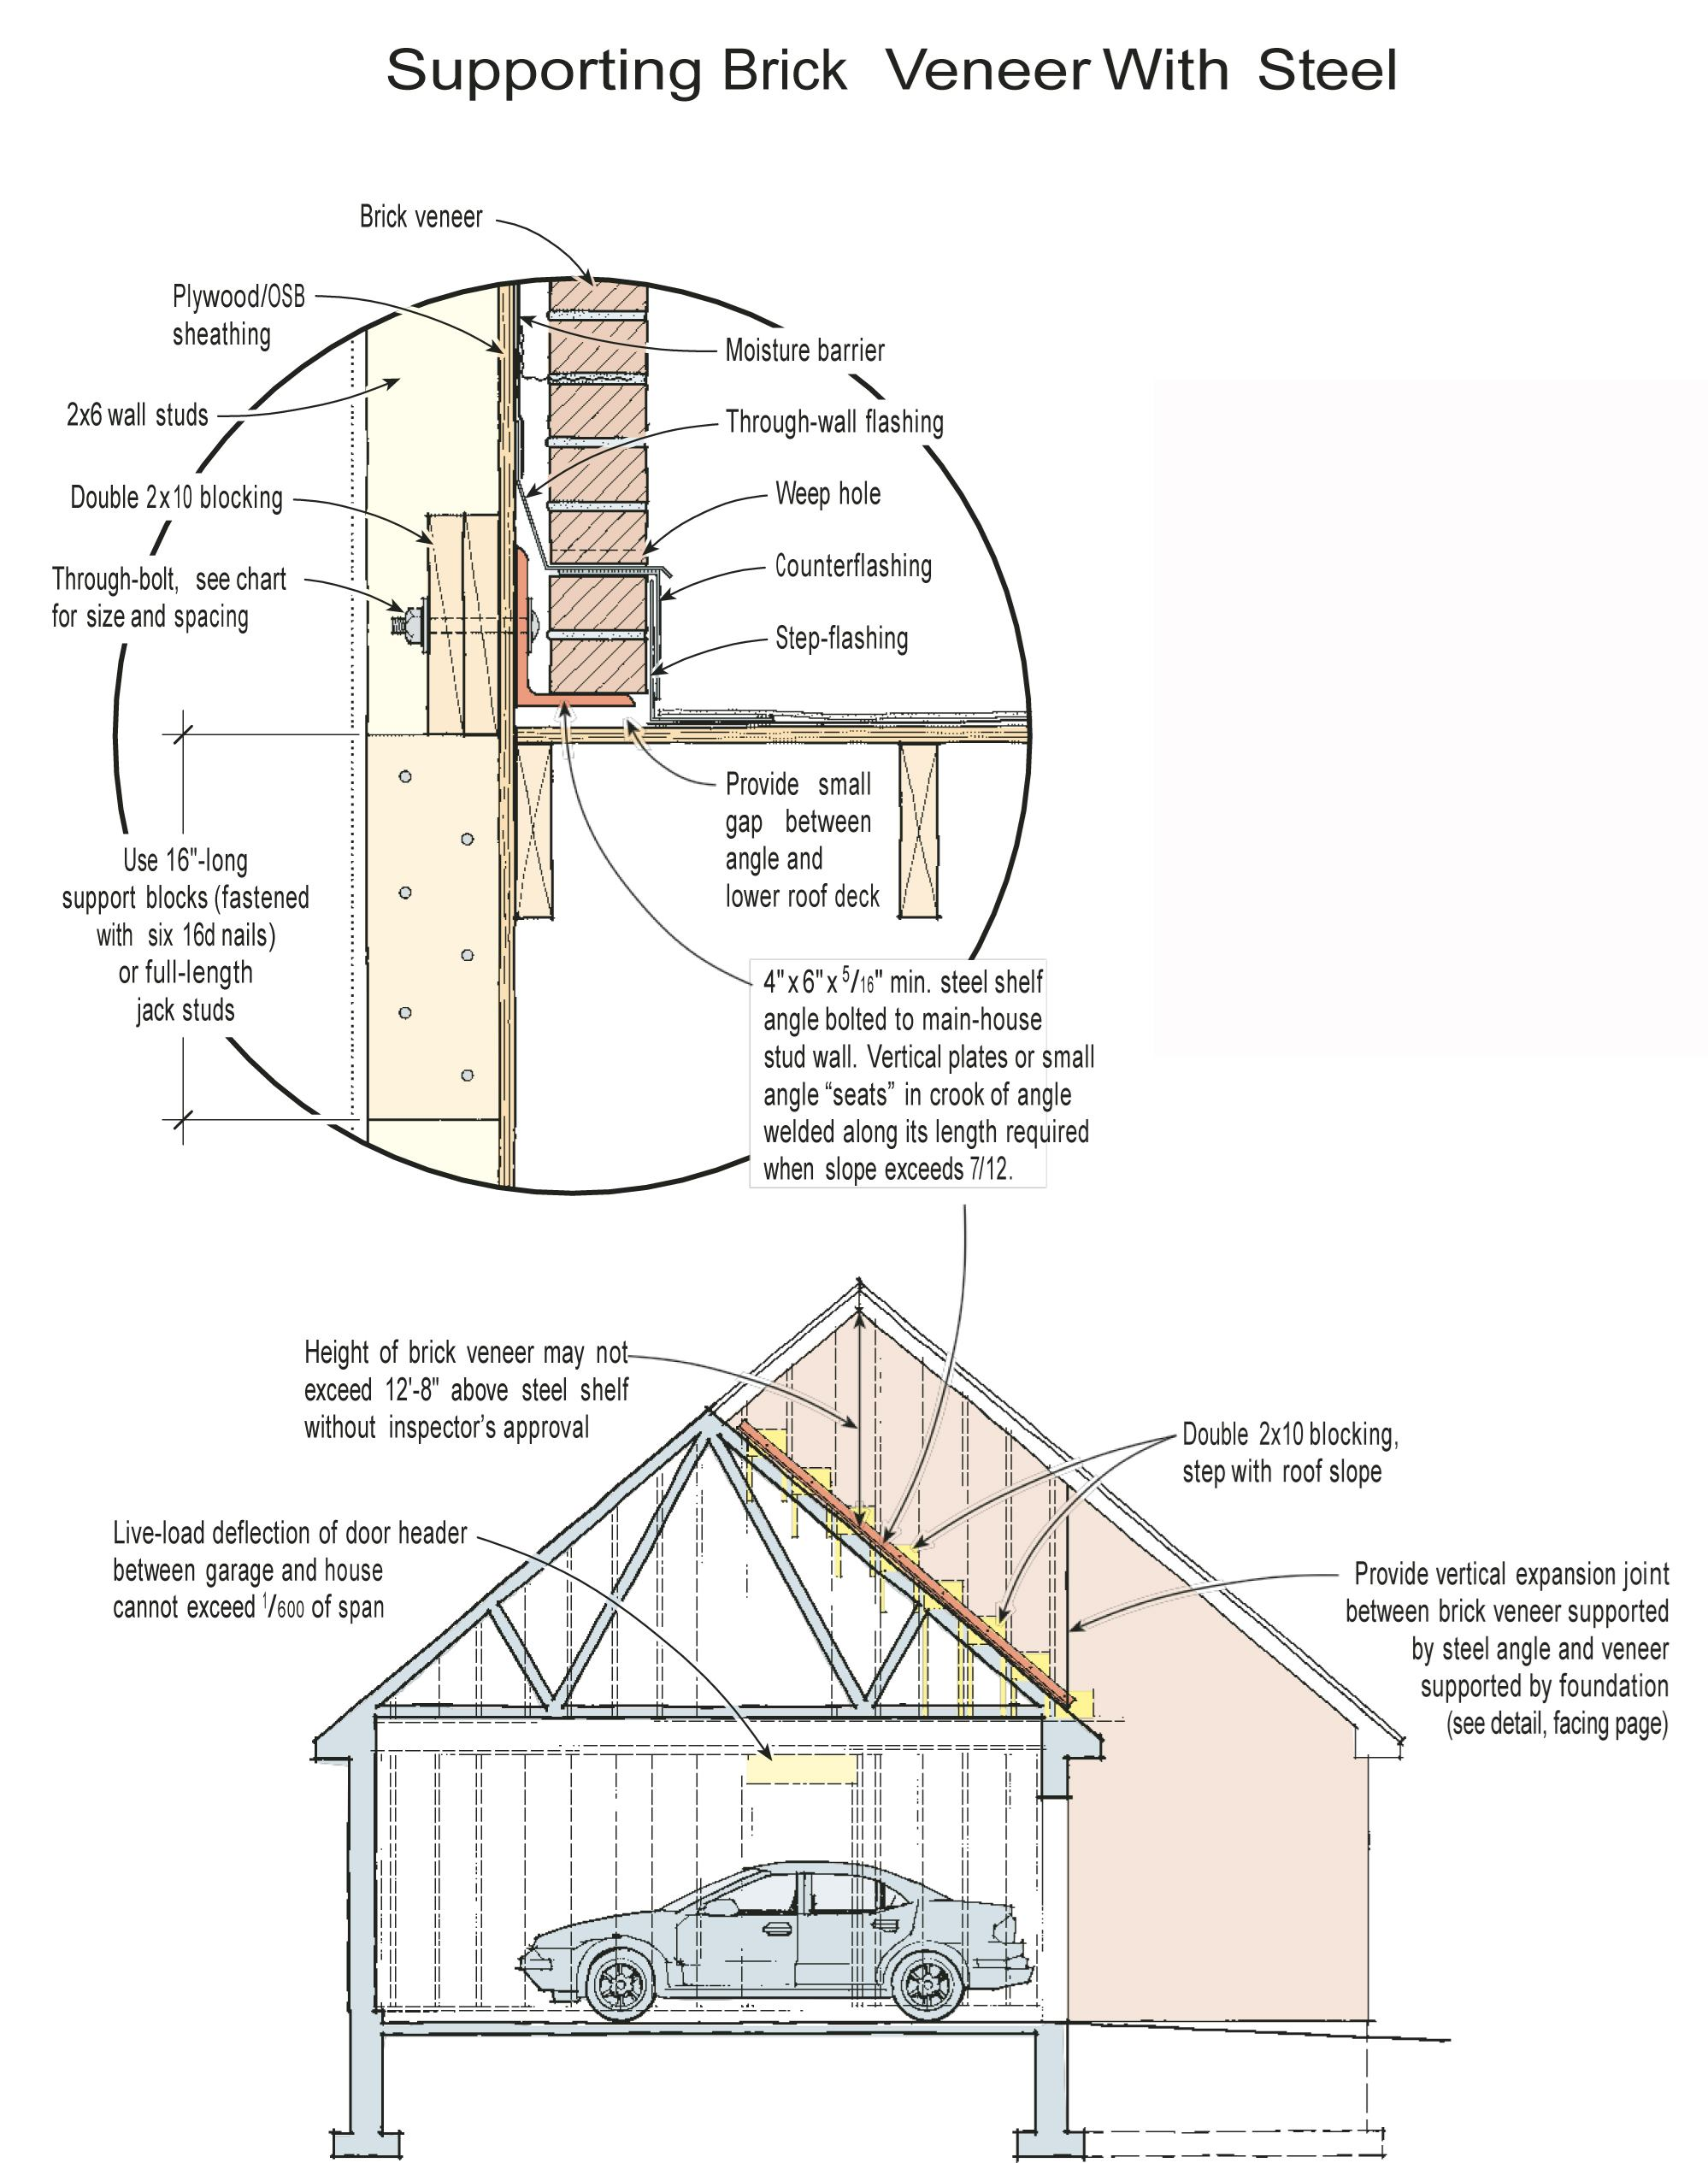 Supporting Brick Veneer On Wood Framing Jlc Online